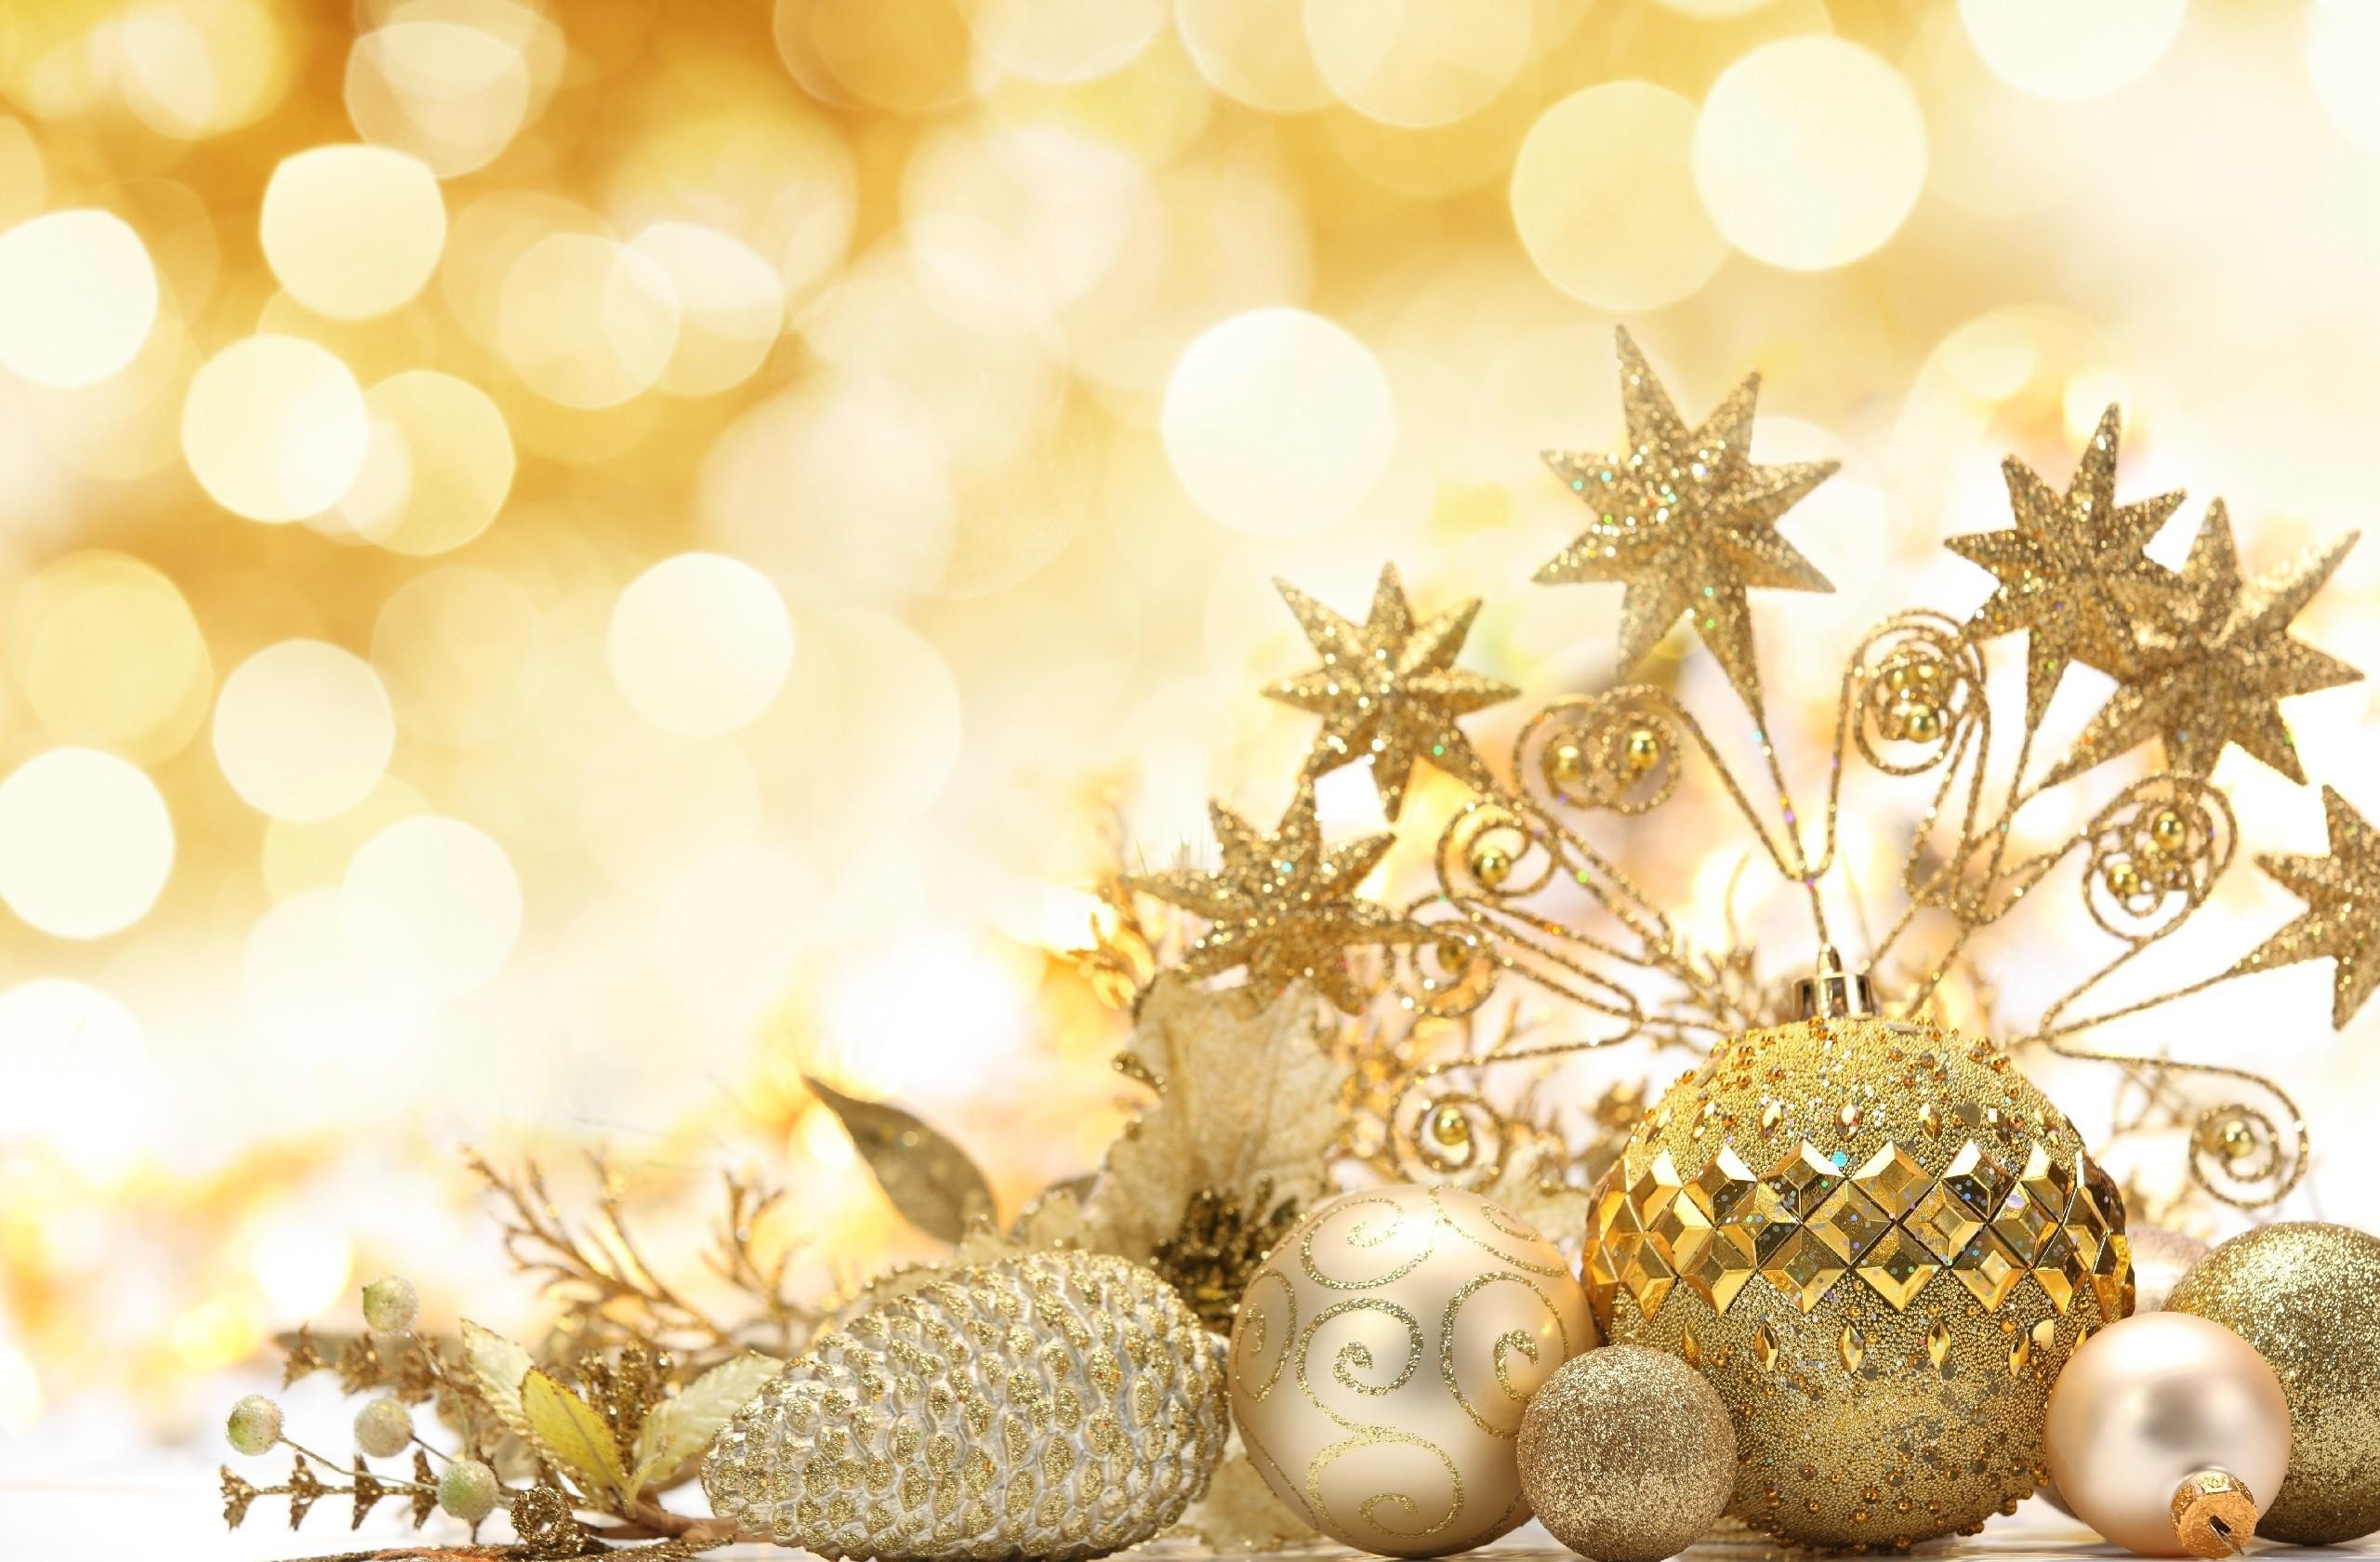 Gold Christmas Ornament Background (16)